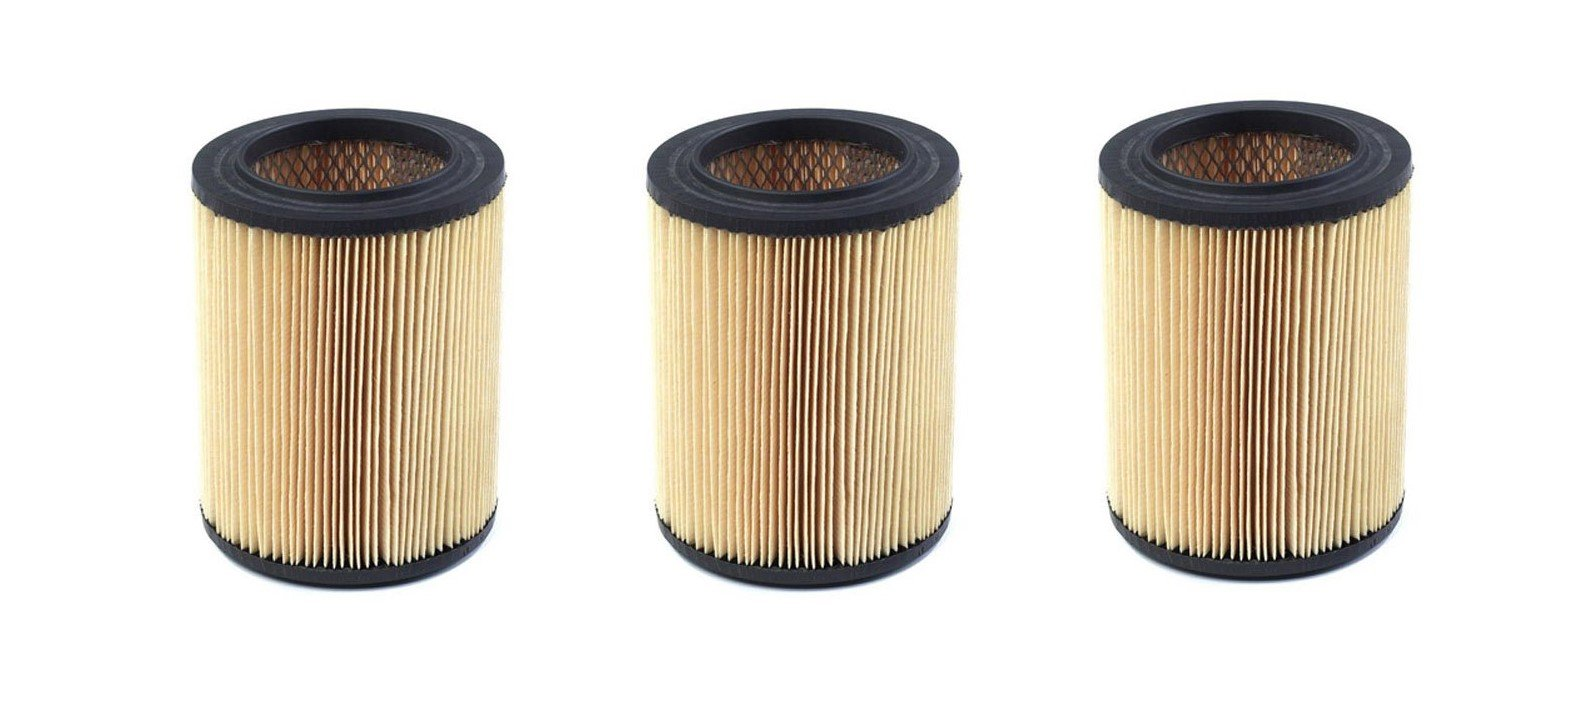 Shop-Vac 90328 Ridgid Replacement Cartridge Filter for Craftsman and Ridgid Brand Vacuums, 3 Pack by Shop-Vac